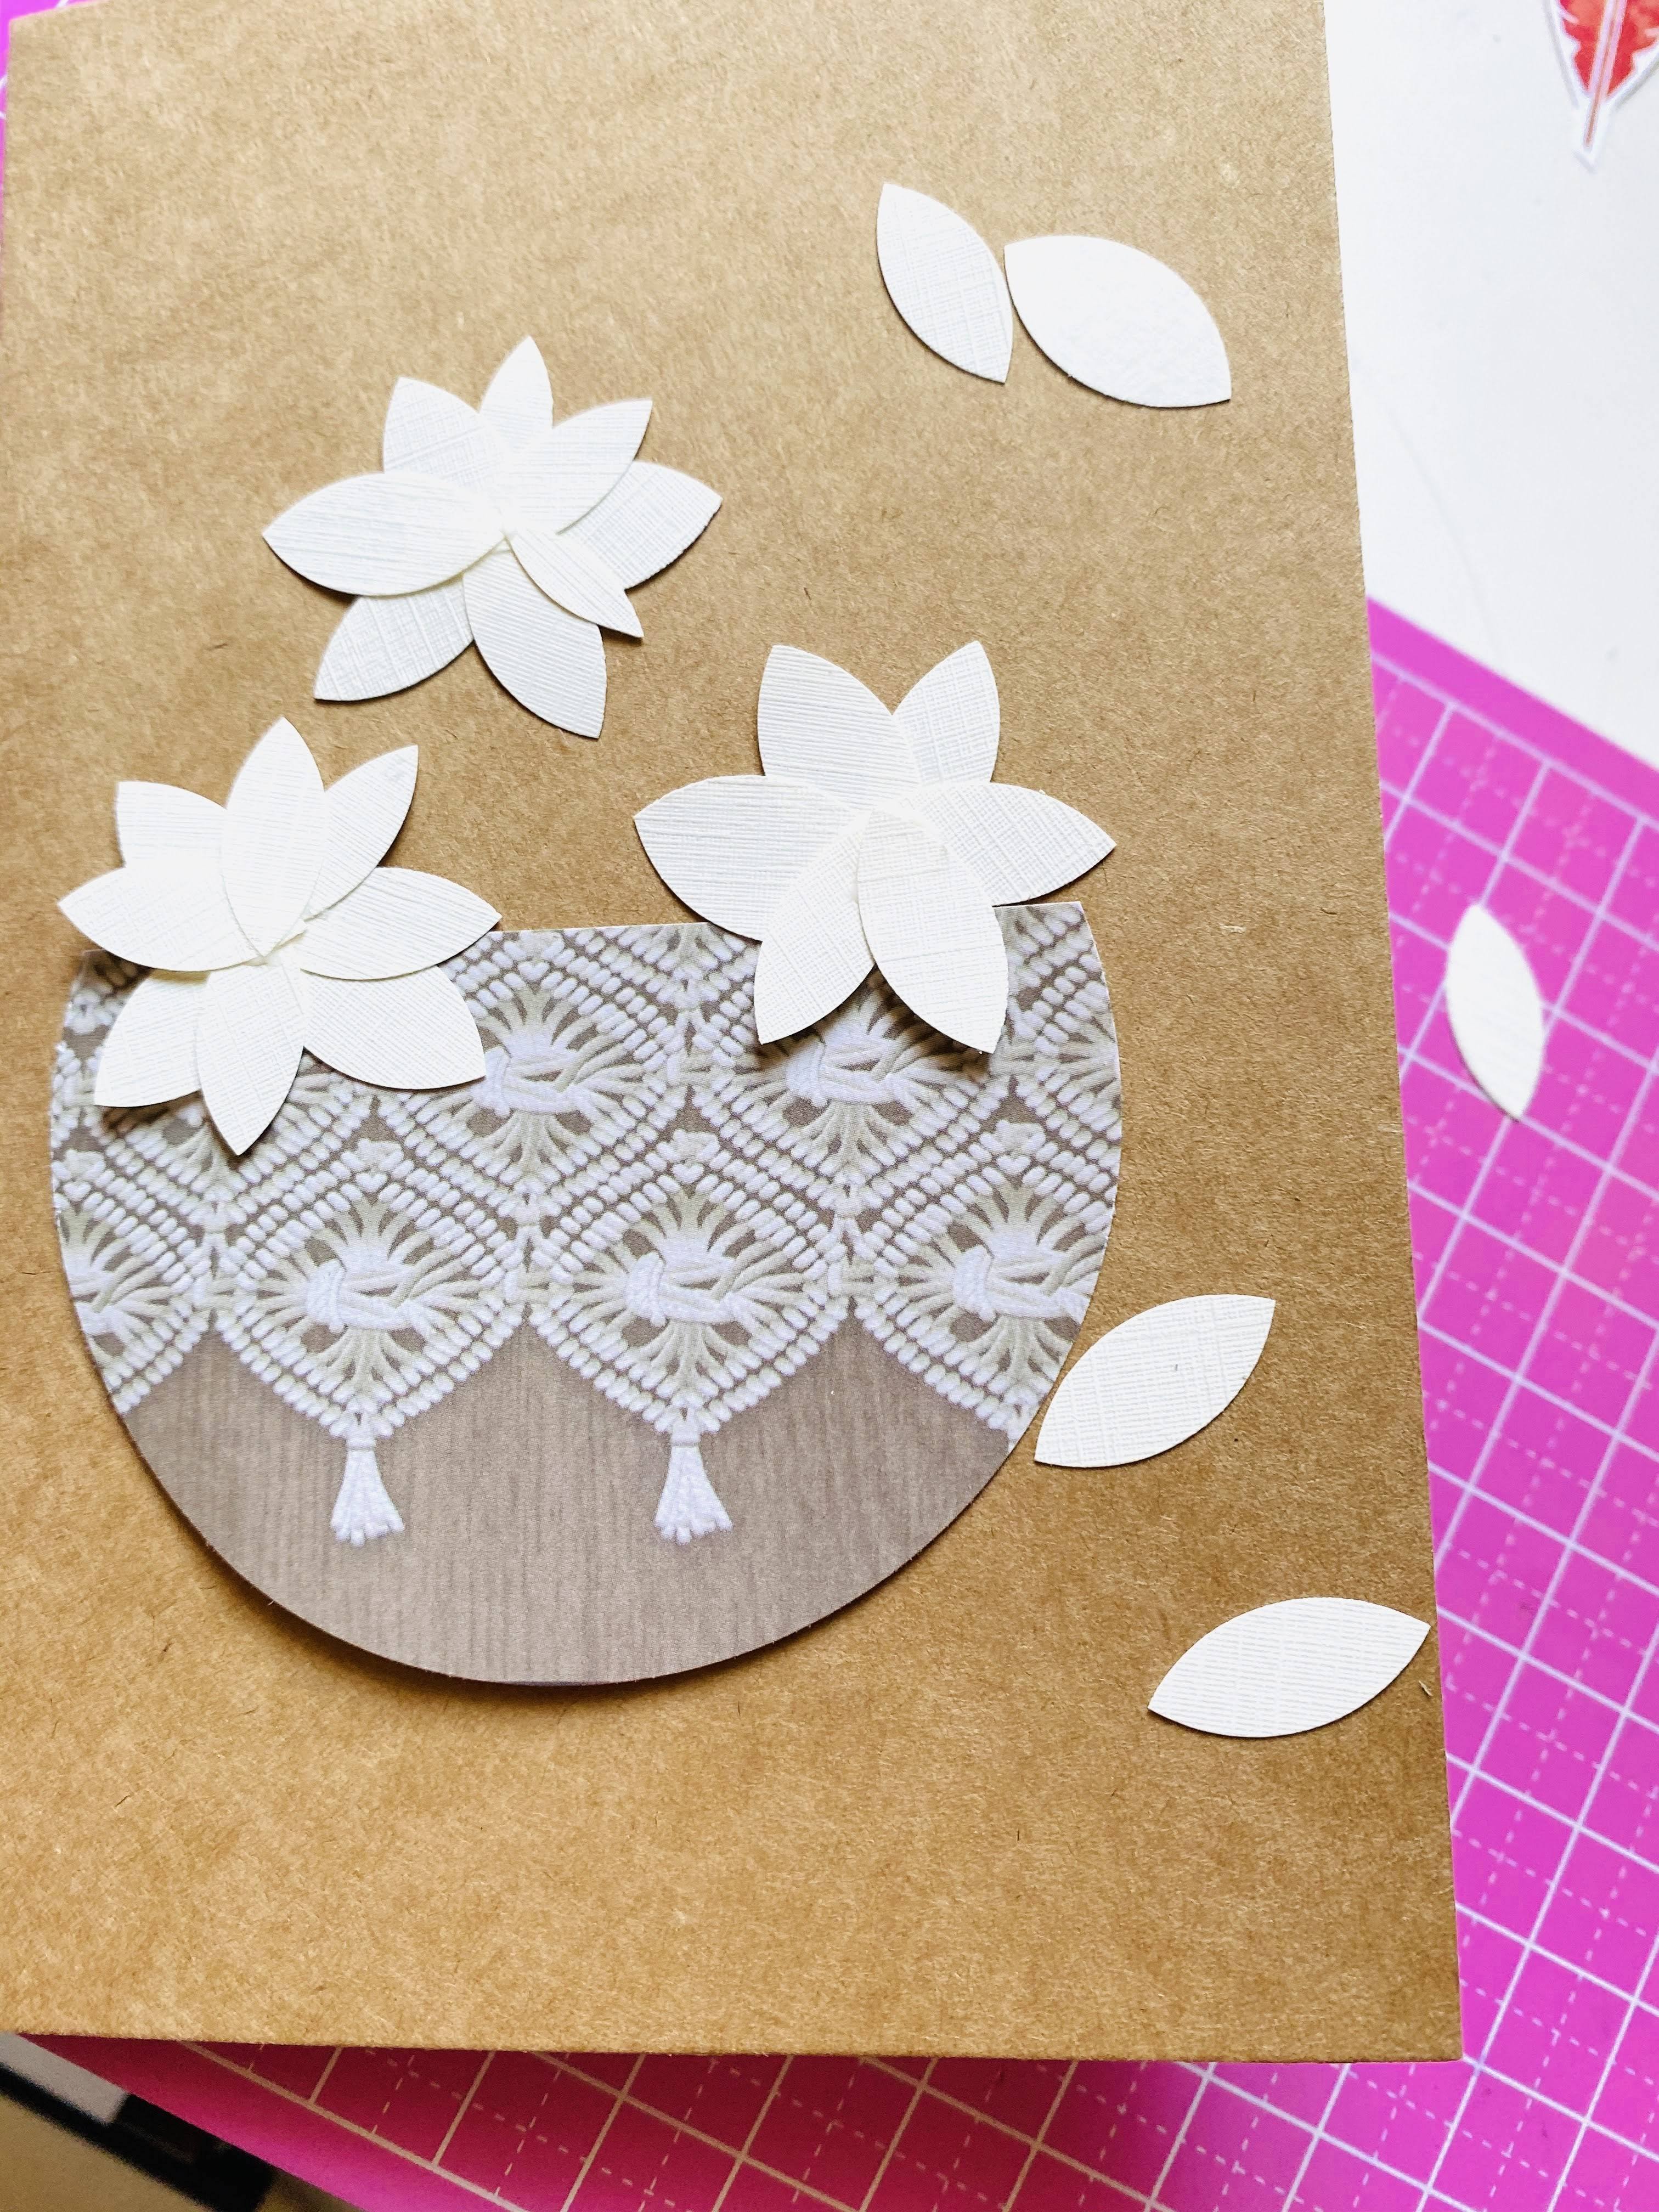 Forming magnolia flowers out of textured paper and making a flower basket for a homemade card.